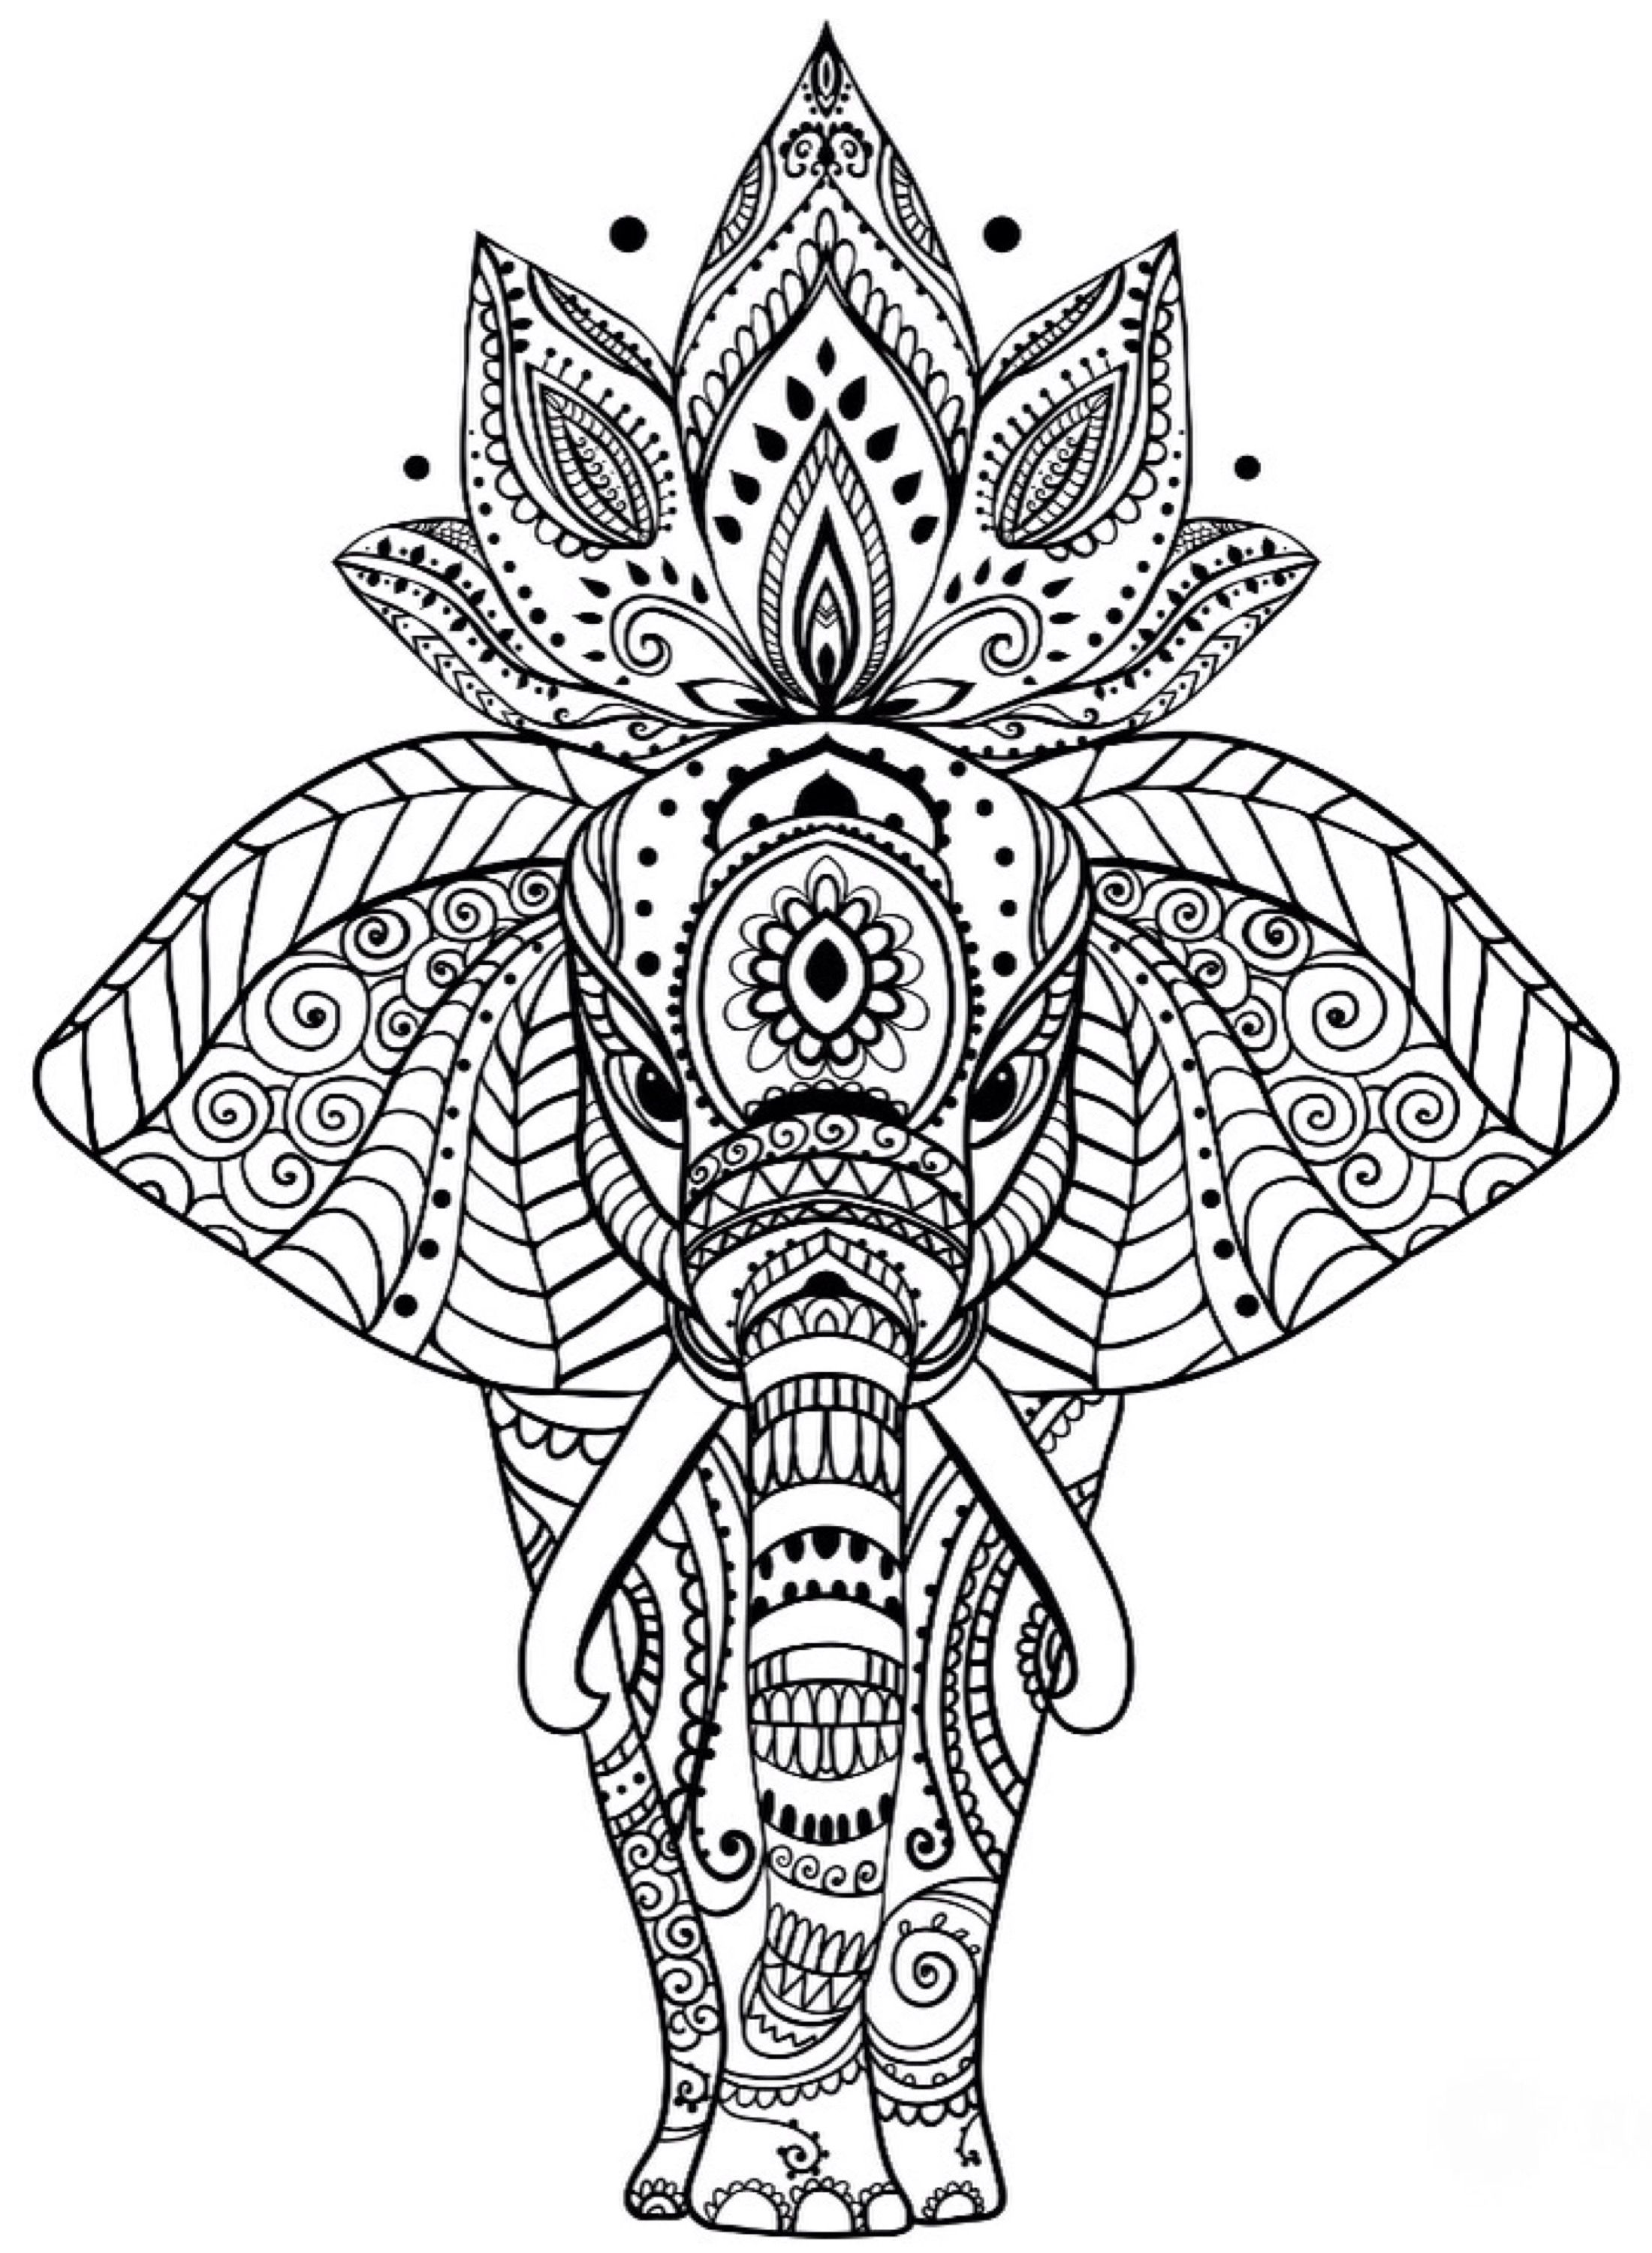 Stress relief coloring pages mandala -  Animal Coloring Pages More Pins Like This One At Fosterginger Pinterest